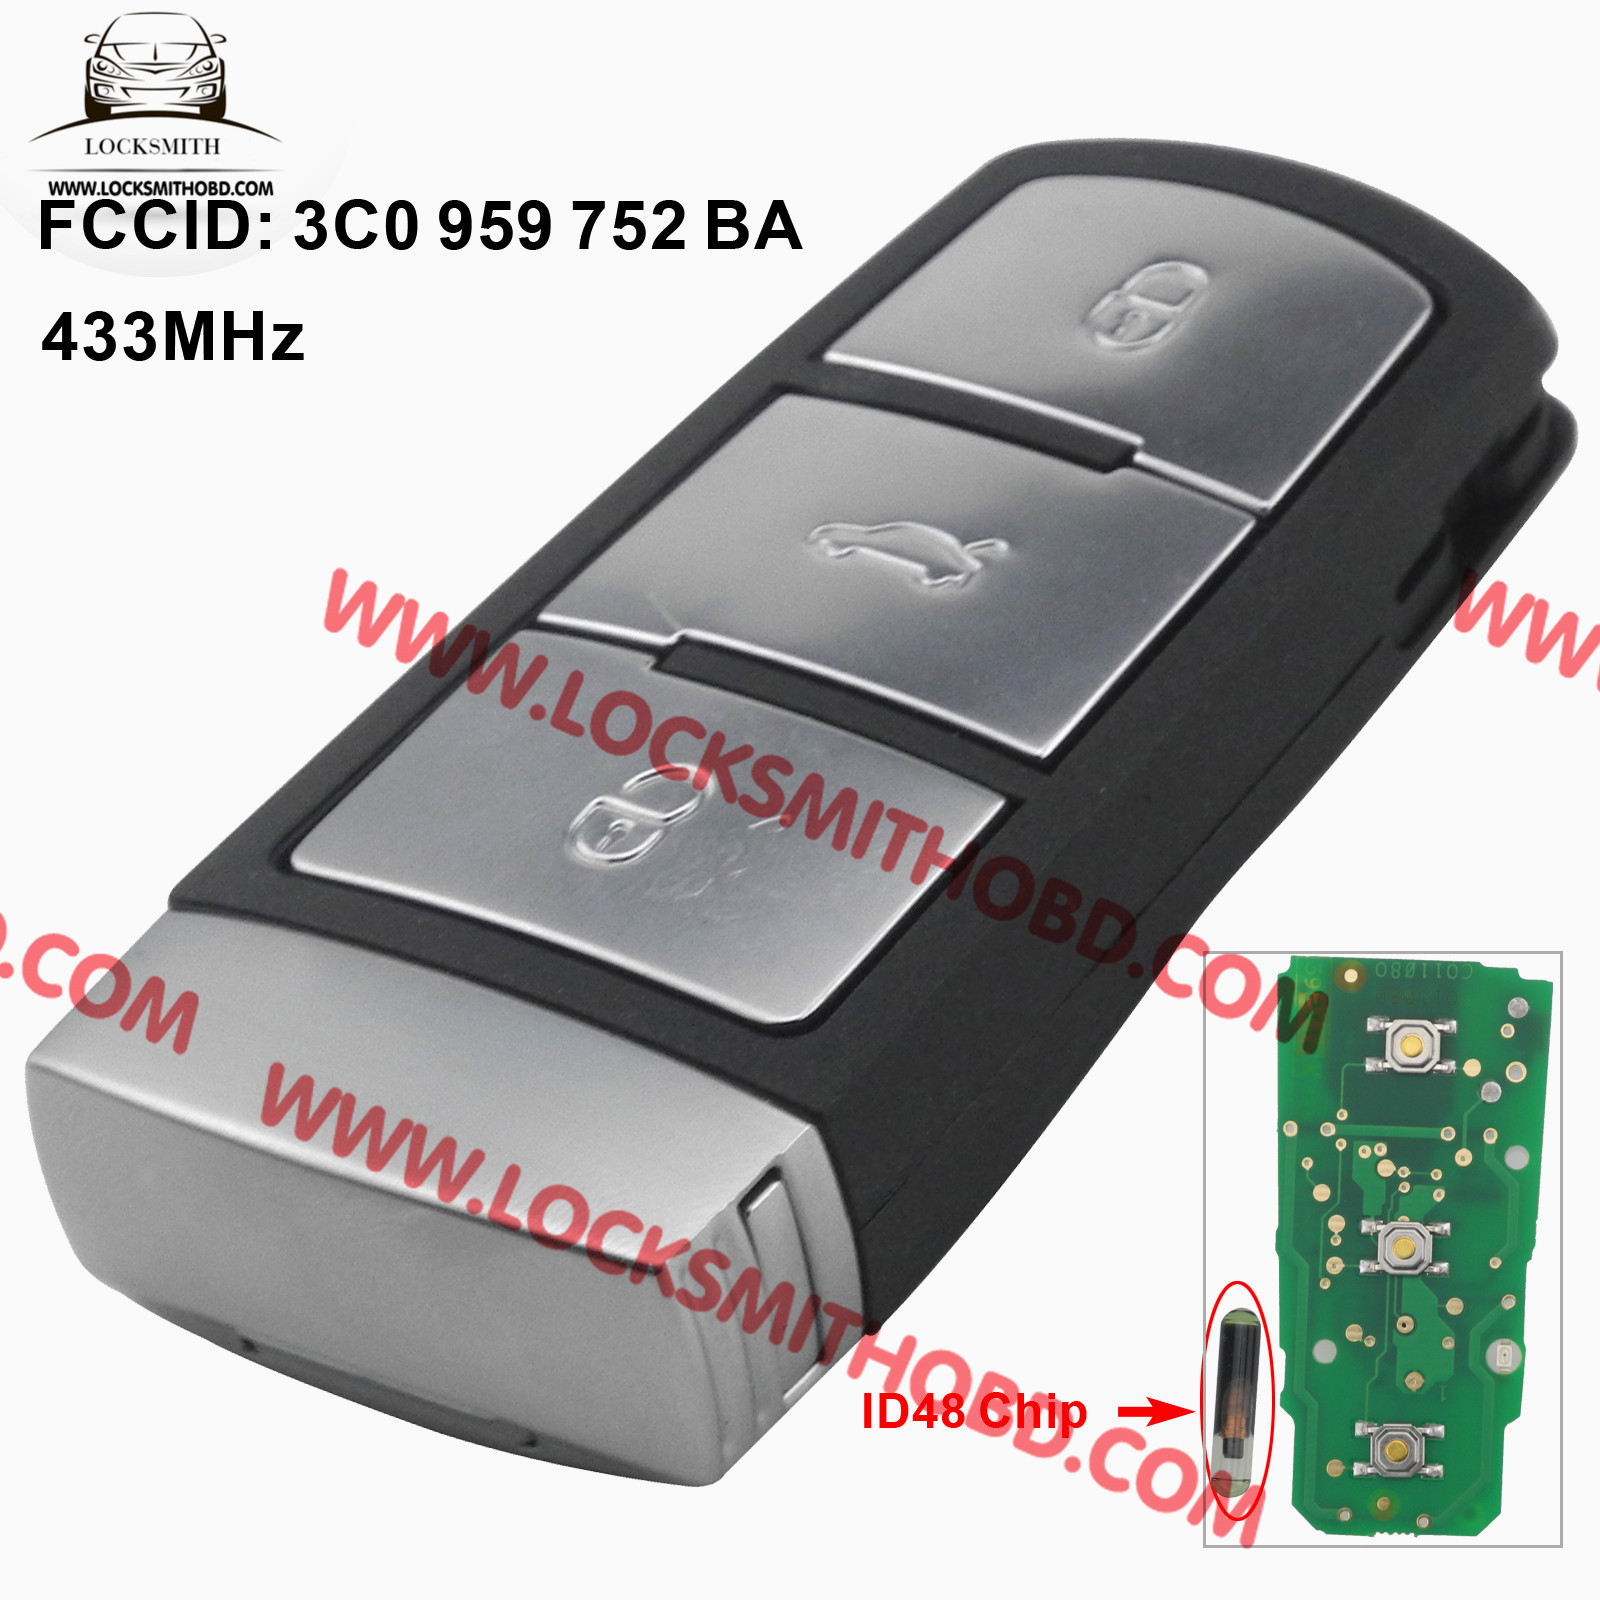 LOCKSMITHOBD VW Passat 3 Buttons remote key 3C0959752BA / AD Remote 433Mhz